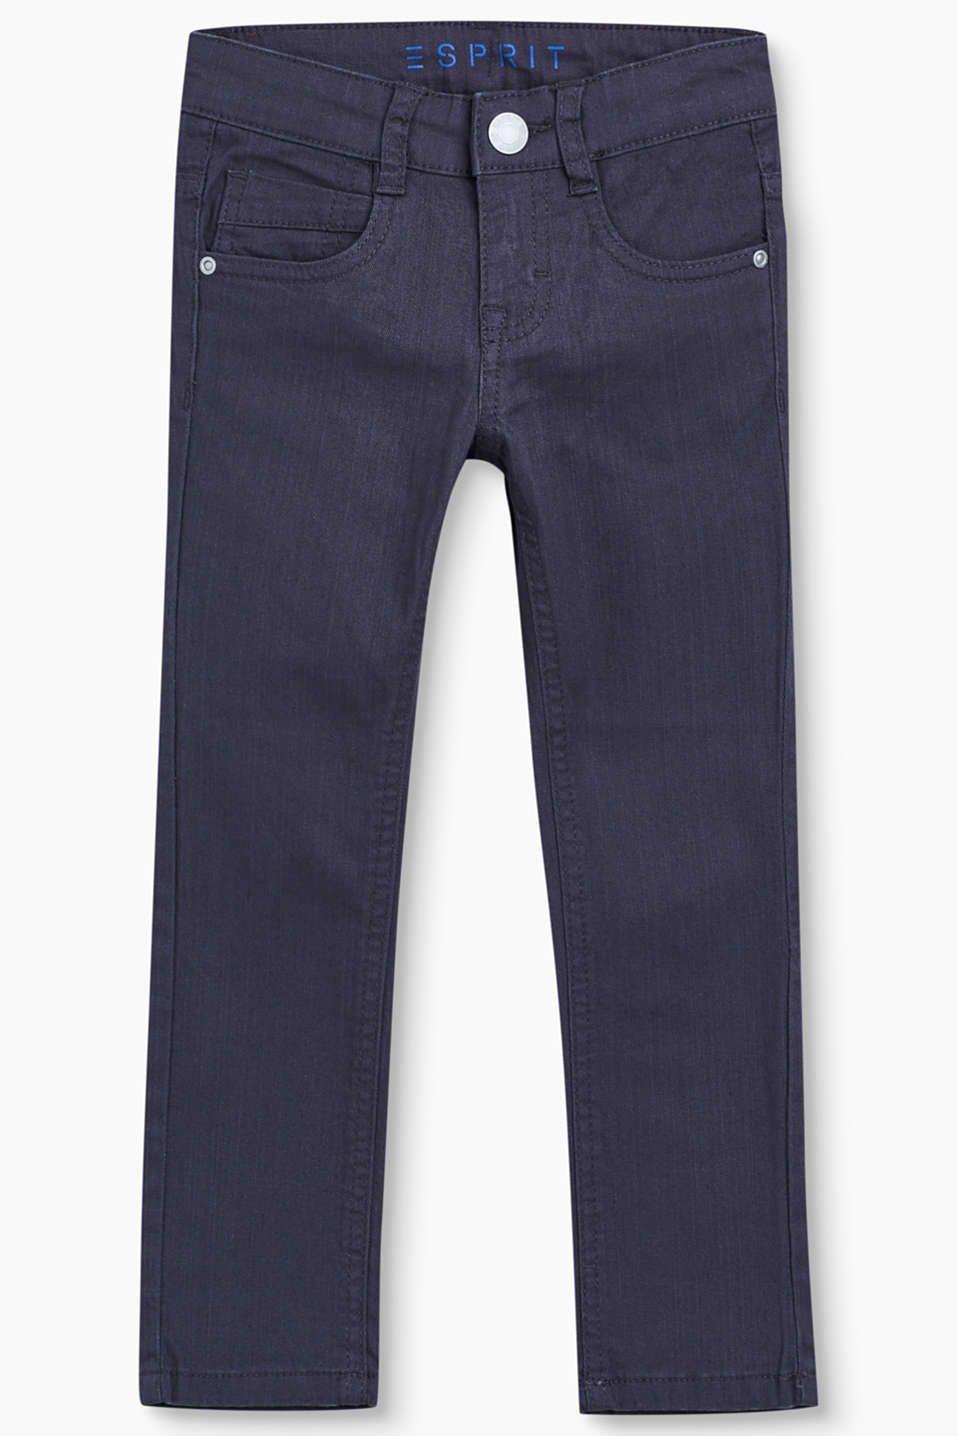 Esprit - Weiche 5-Pocket-Jeans mit Stretch-Komfort